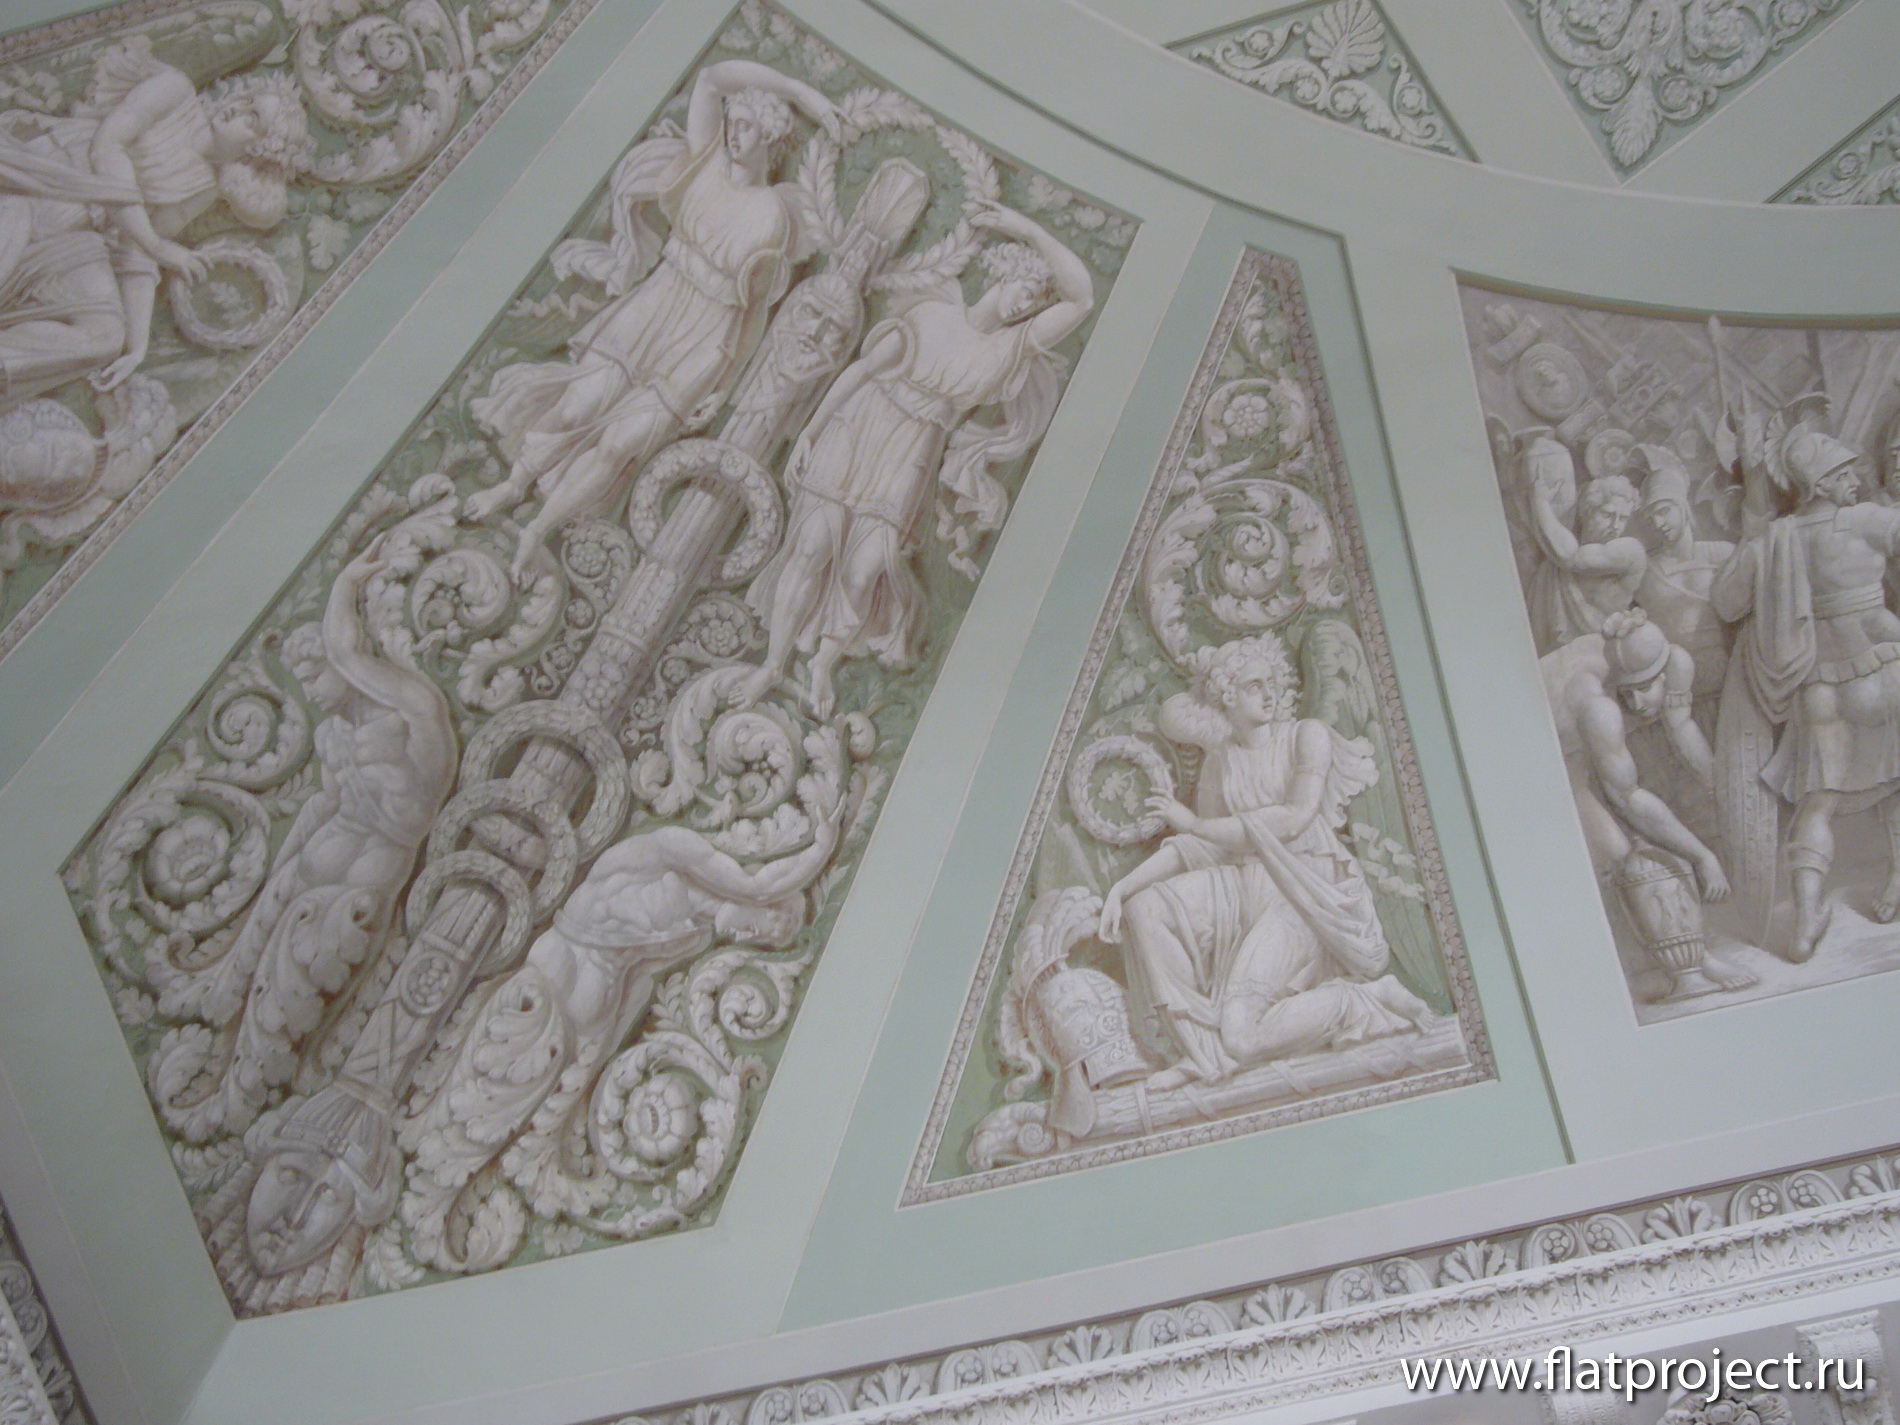 The State Russian museum interiors – photo 22